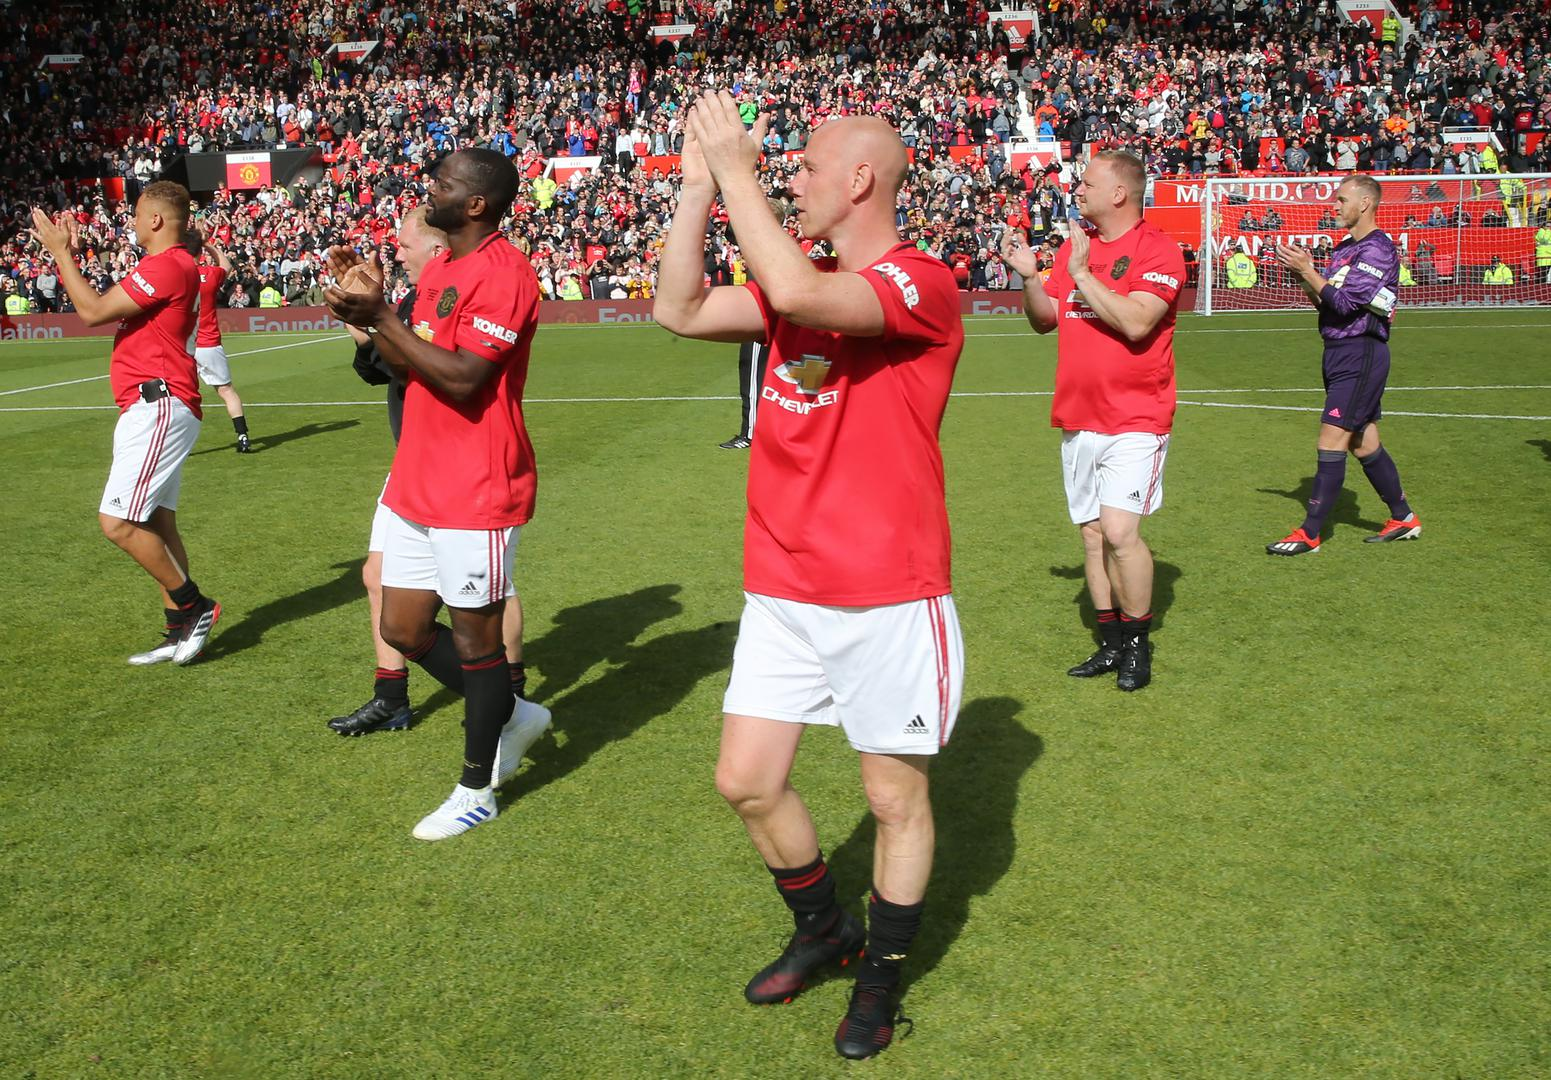 Nicky Butt applauds the supporters at Old Trafford.